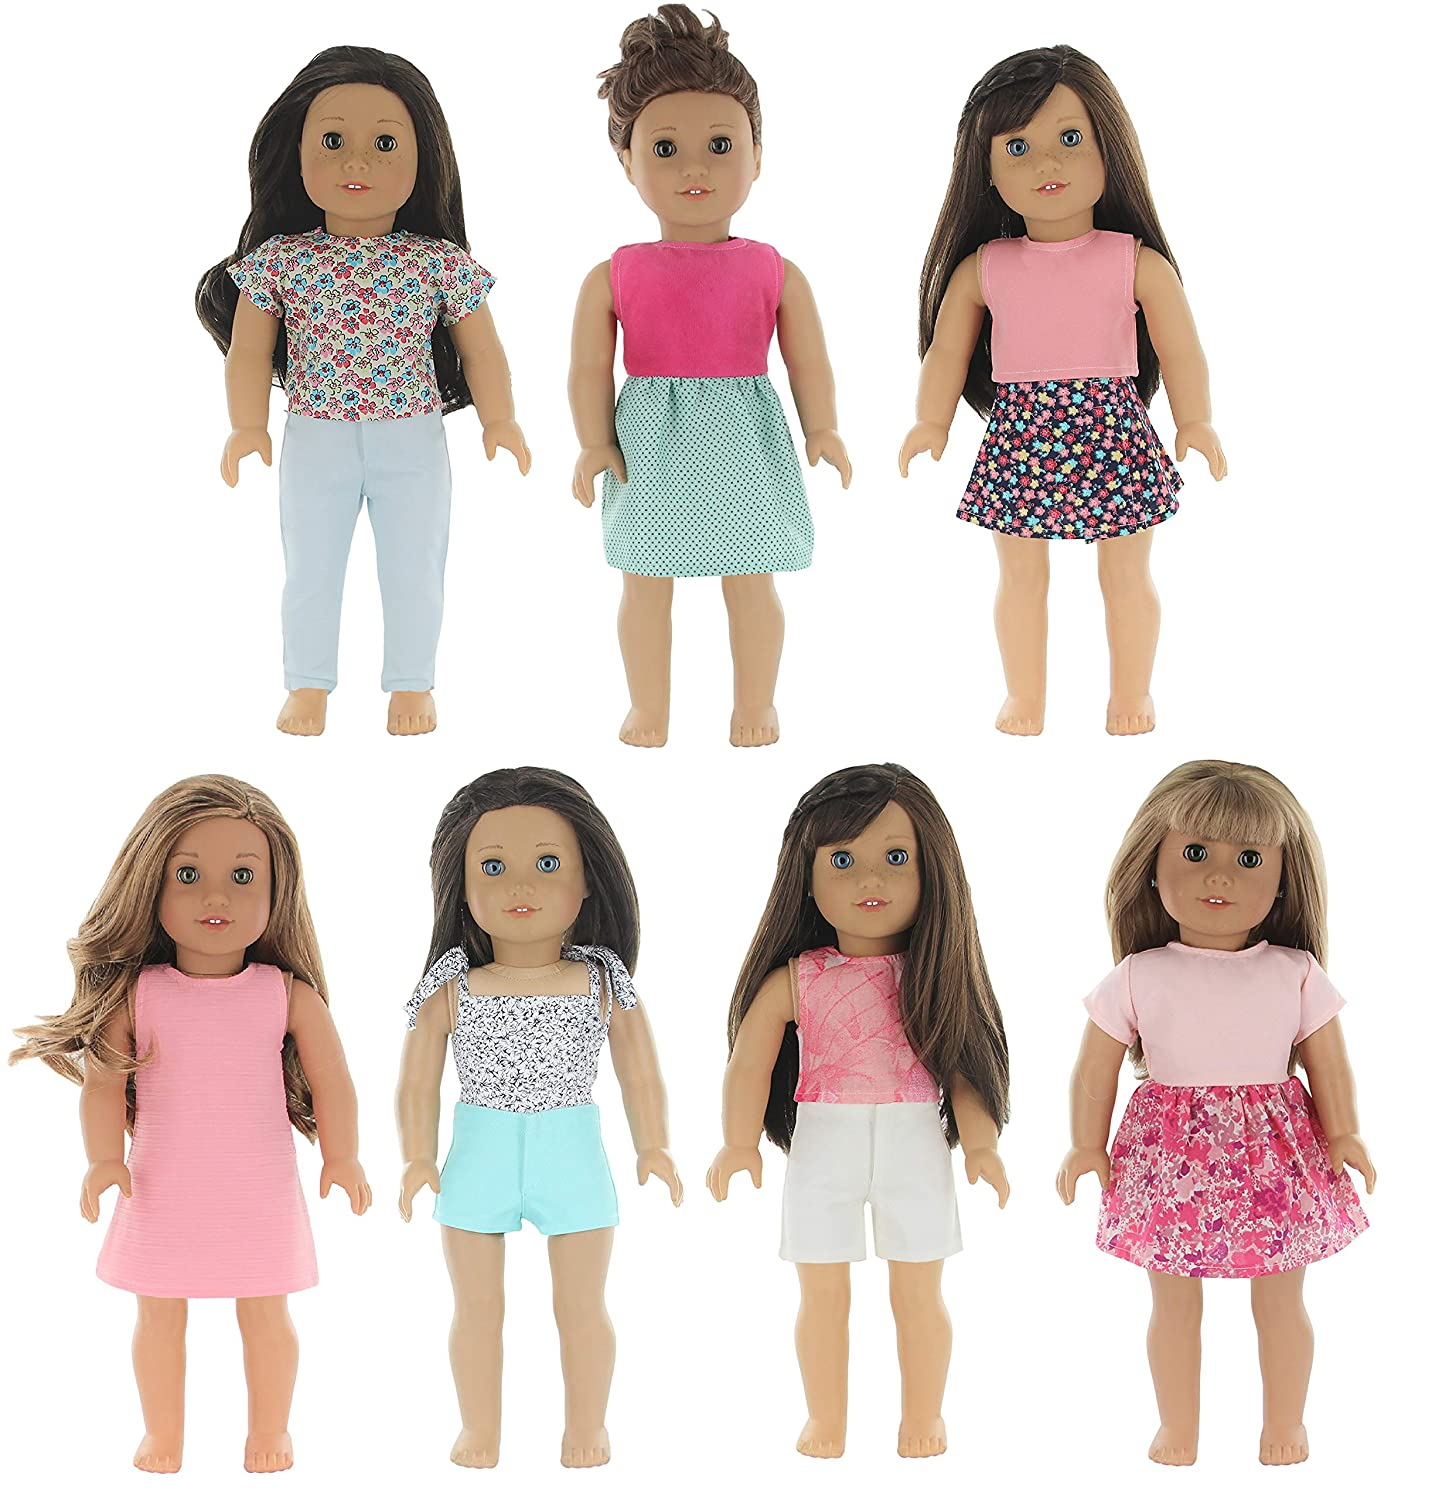 66a6f7882450 Amazon.com: PZAS Toys 7 Outfit Set, 18 Inch Doll Clothes, Compatible with  All 18 Inch Doll Clothes: Toys & Games